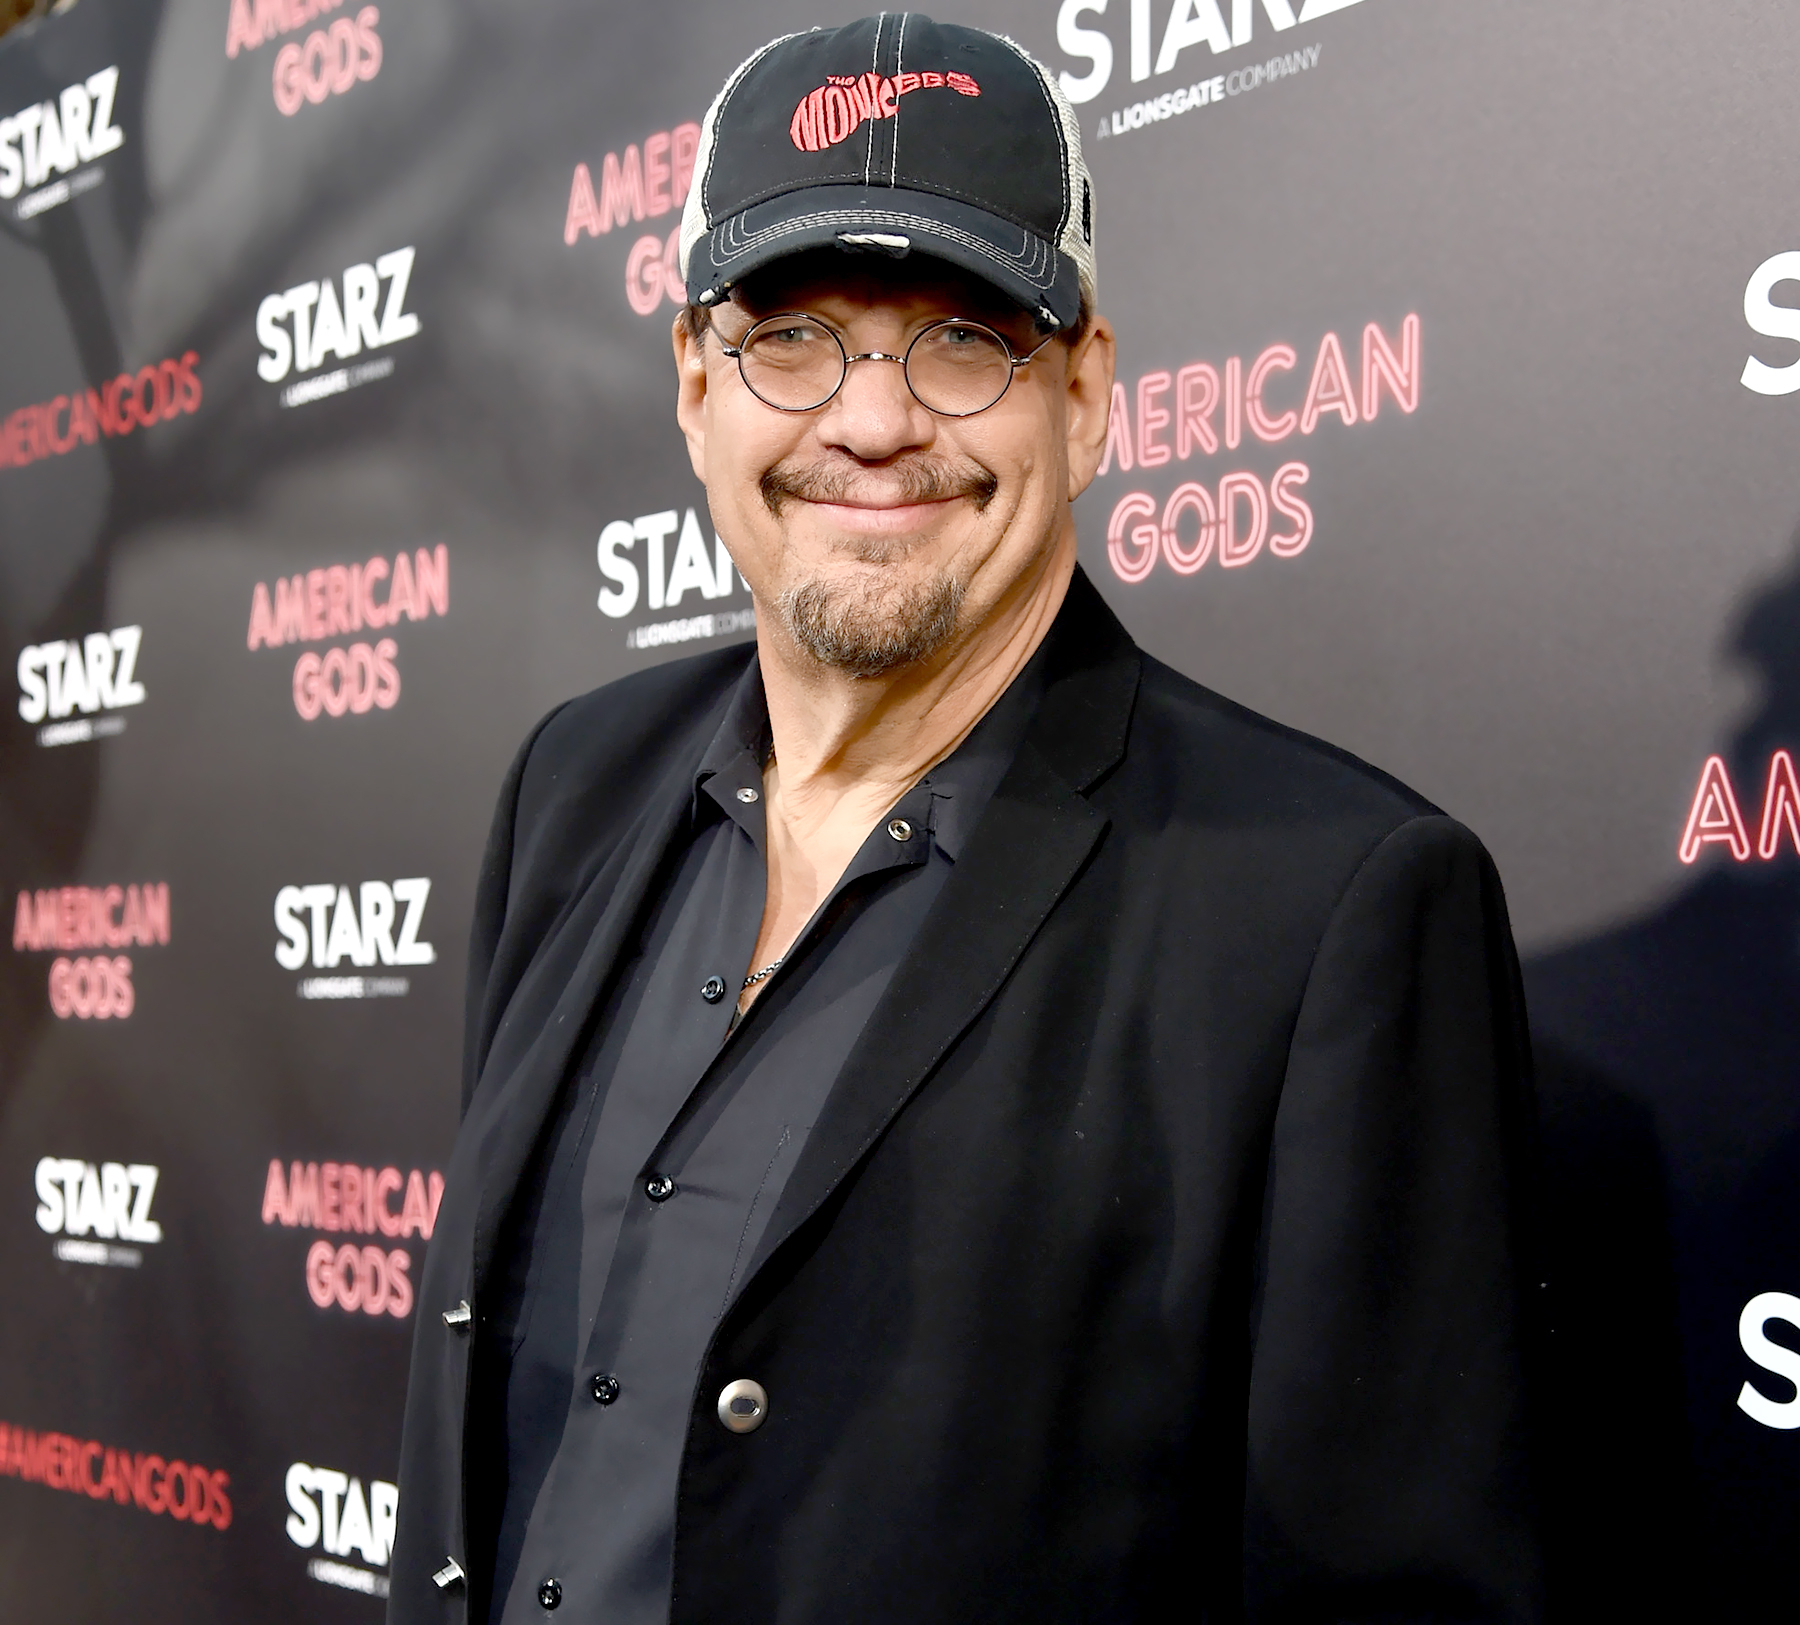 Penn Jillette attends the 'American Gods' premiere at ArcLight Hollywood in Los Angeles on April 20, 2017.